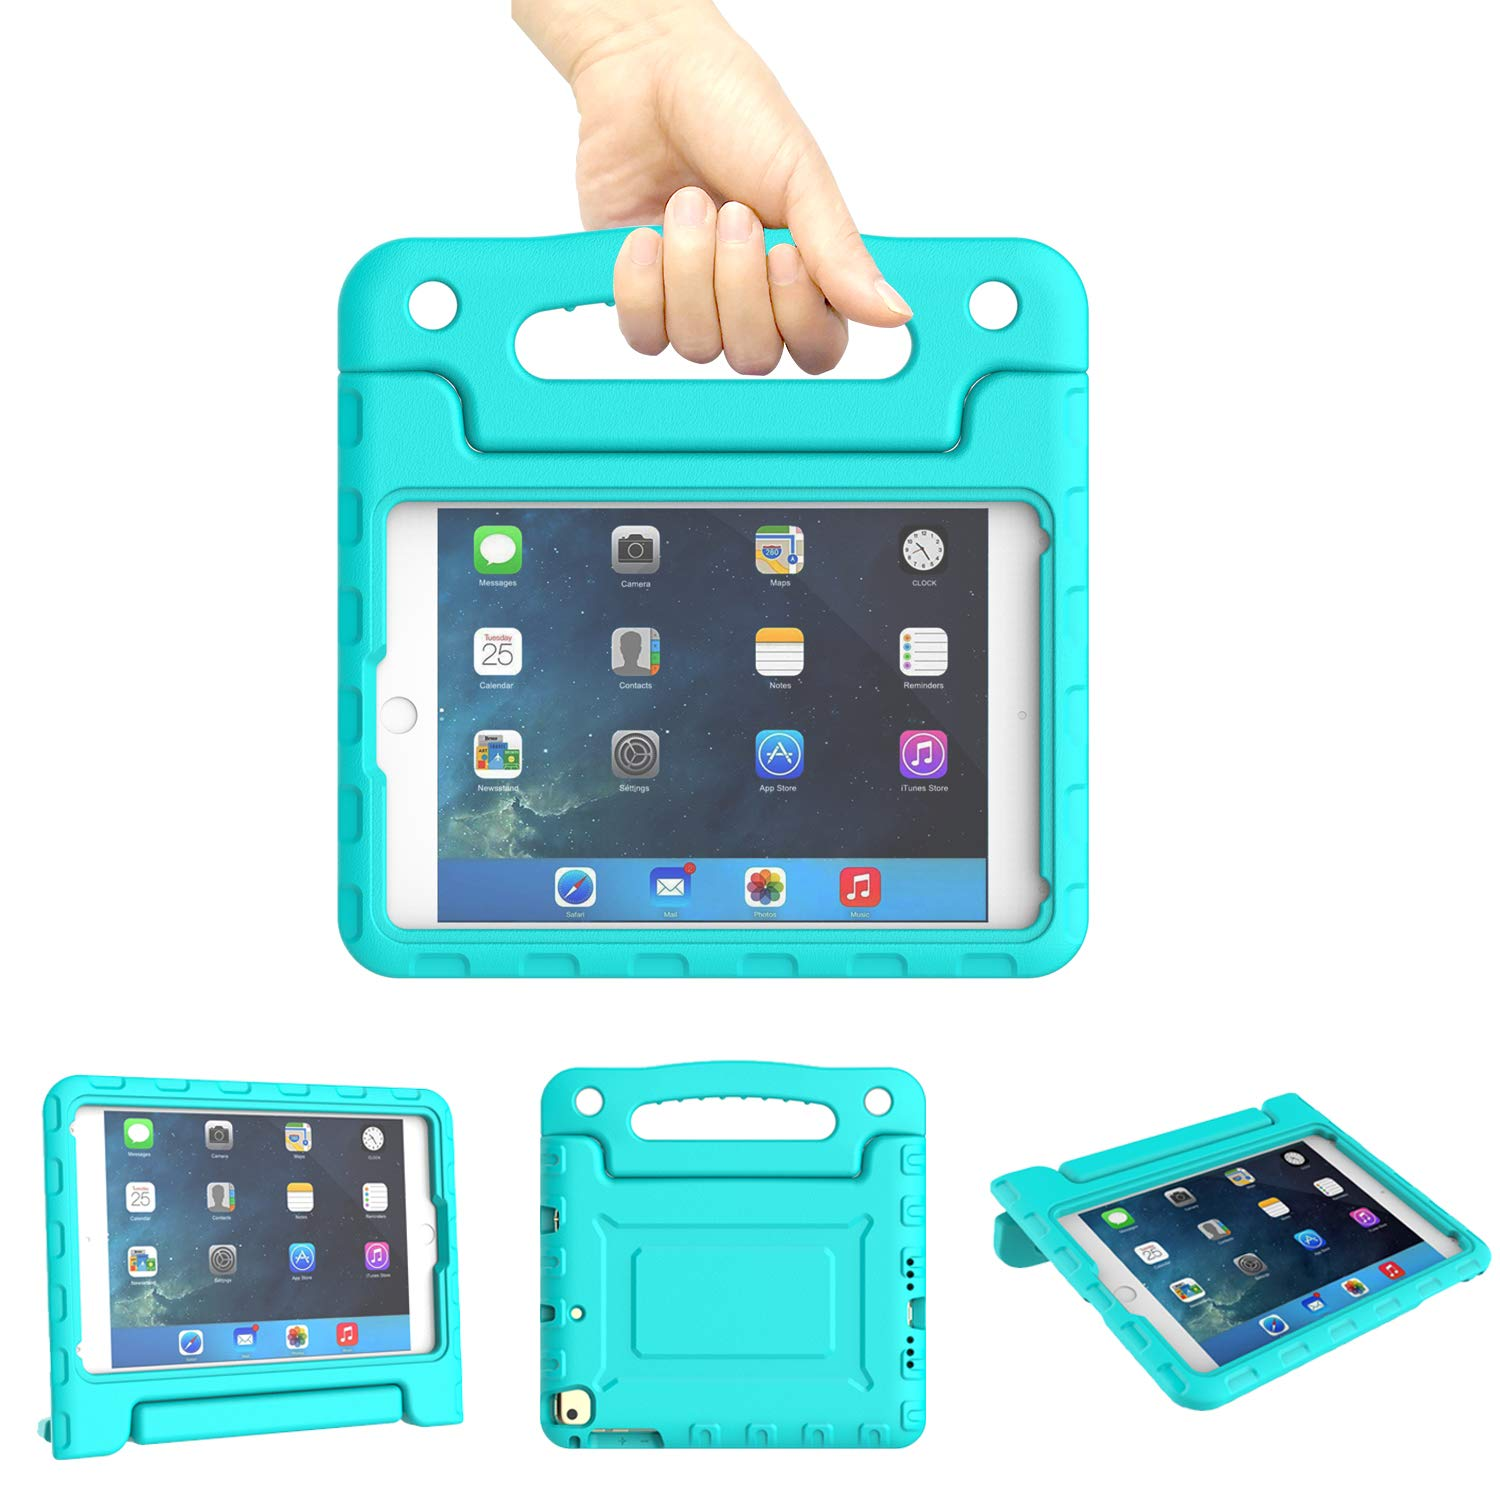 Kids Case for iPad Mini 1 2 3 4 5 Generation - Light Weight Shockproof Convertible Protection Cover with Built-in Handle Stand Children Tablet and 2019 - Retina Display (Turquoise)